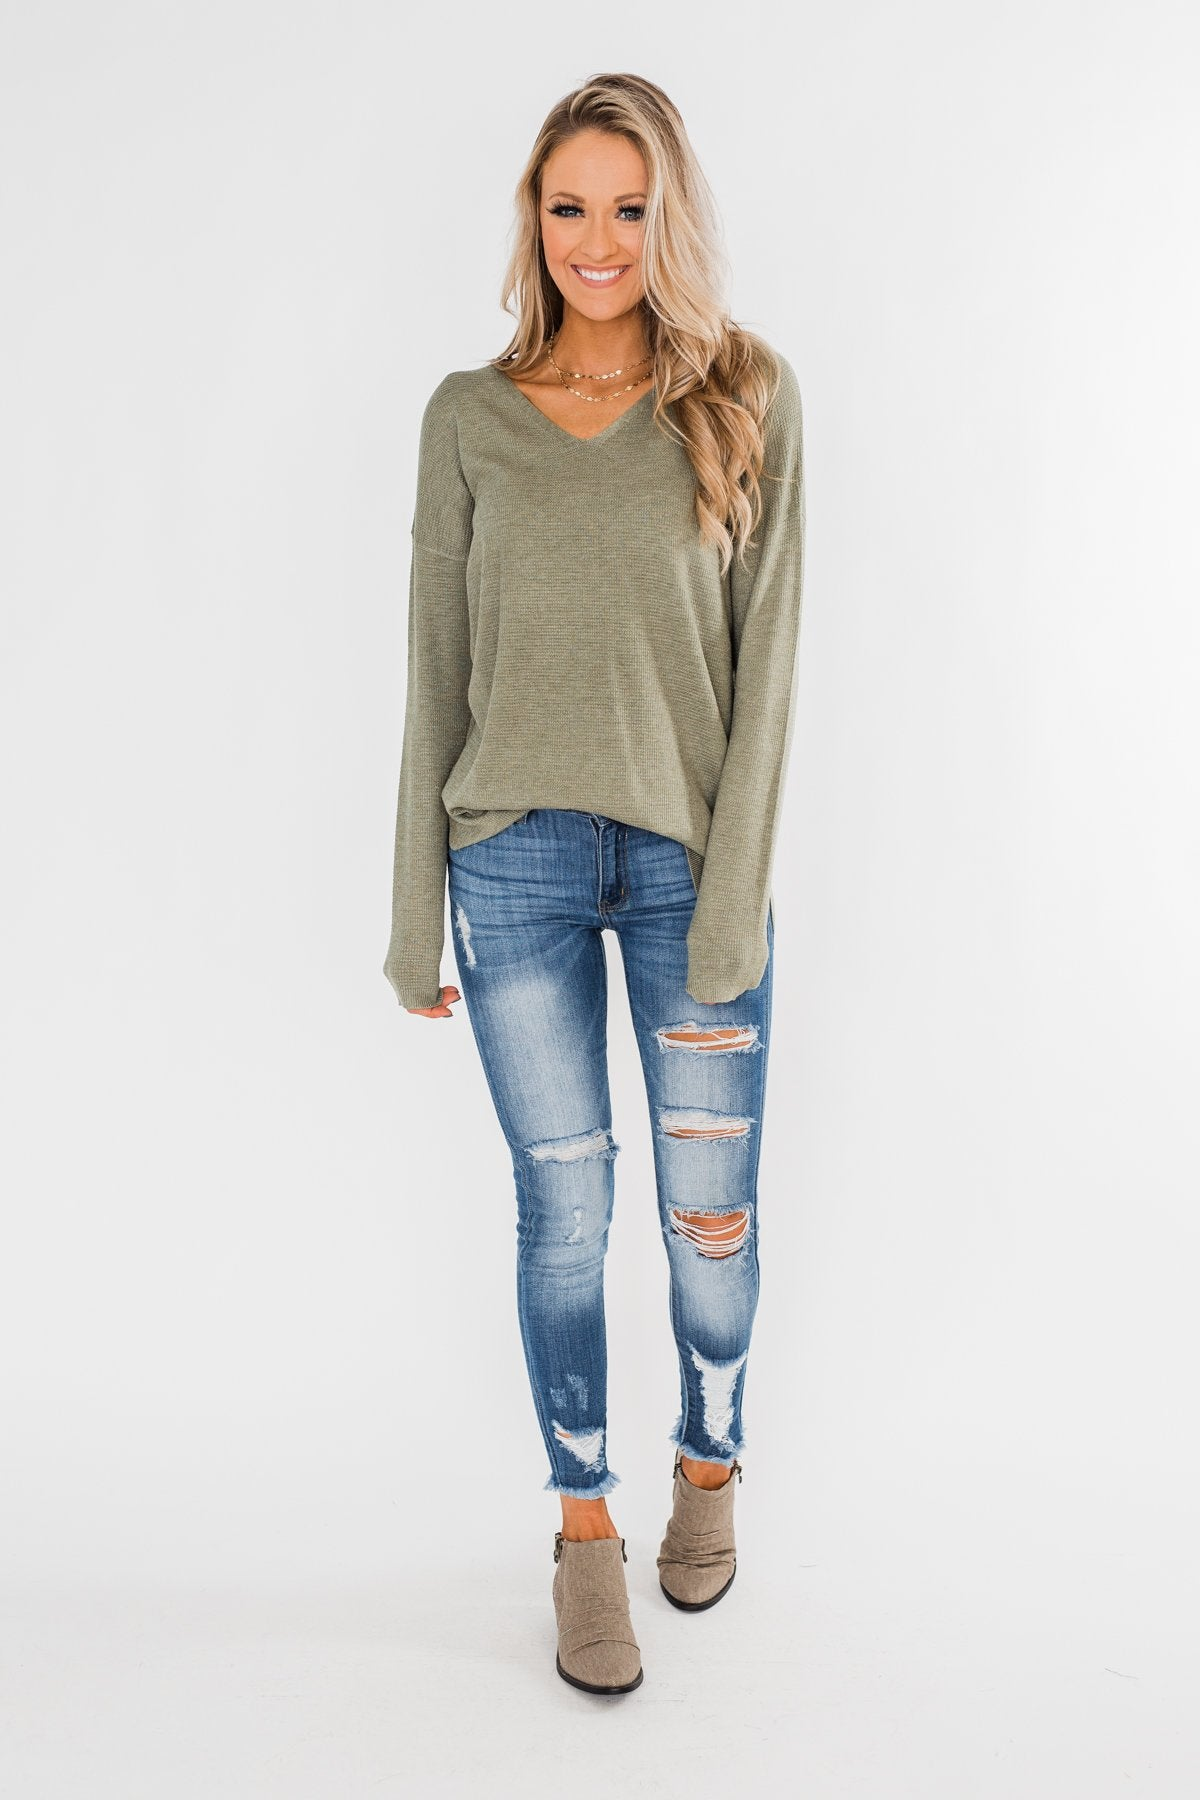 No One Like You Sweater- Olive